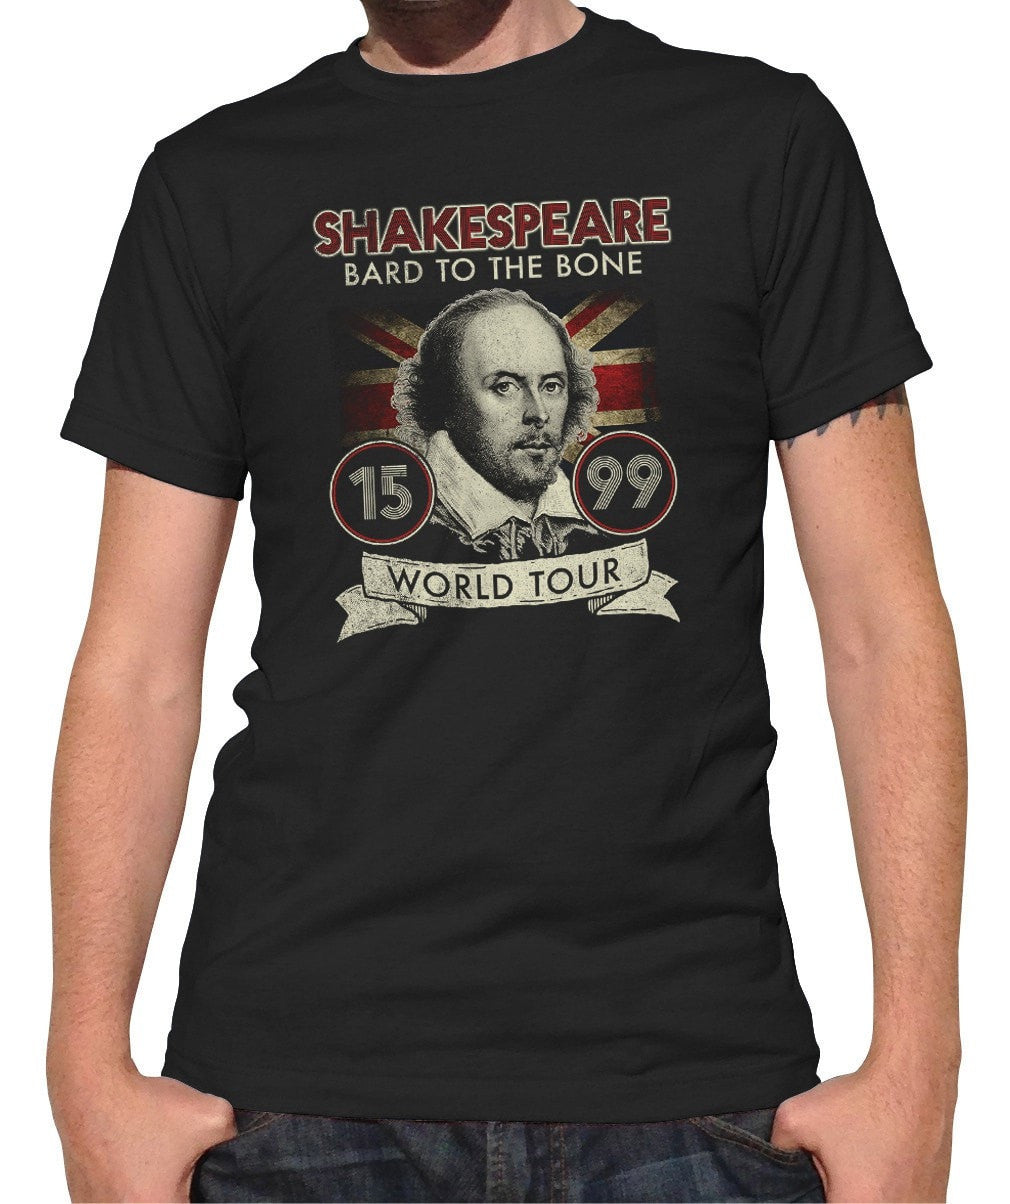 Men's William Shakespeare Bard to the Bone Tour T-Shirt